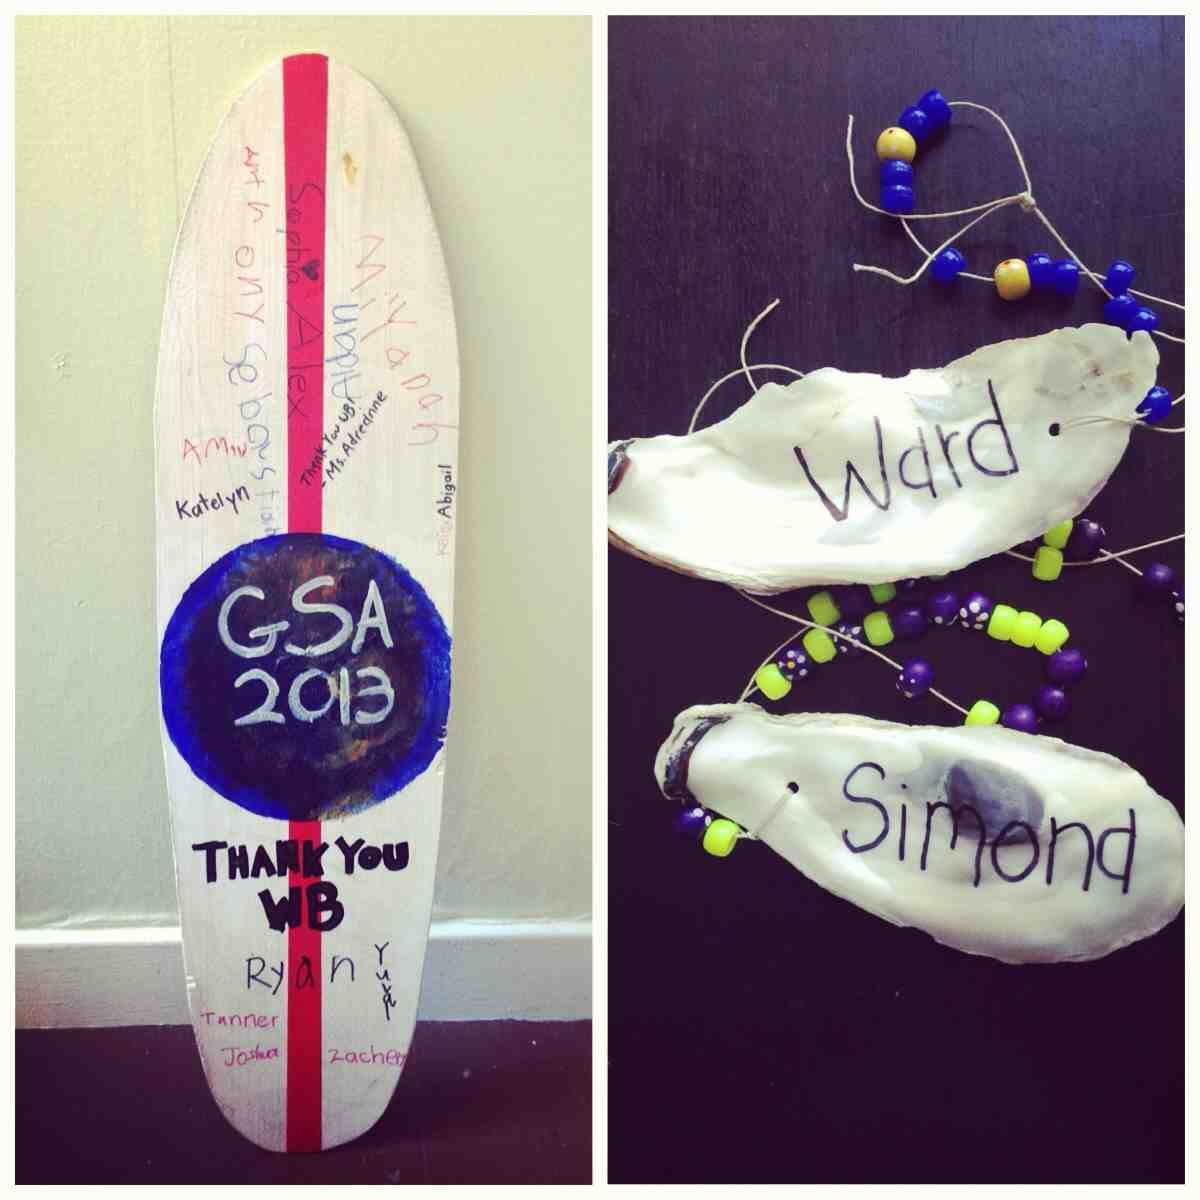 Our 'thank you' surfboard from the class and our surfboard name tags!